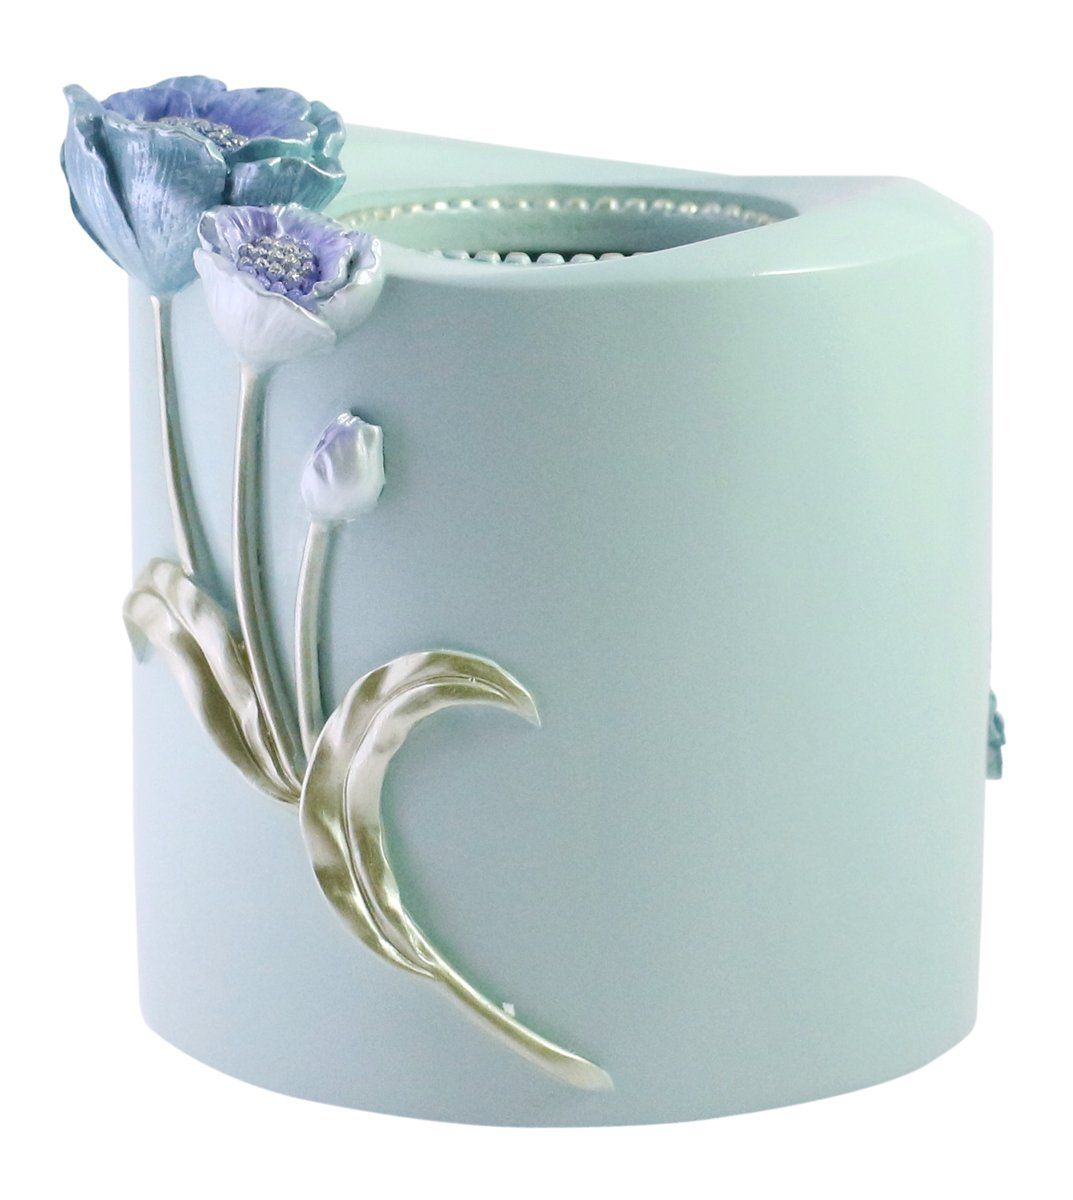 JustNile Decorative Ornamental Vintage Resin Vertical Tissue Holder Box- Blue Round Floral